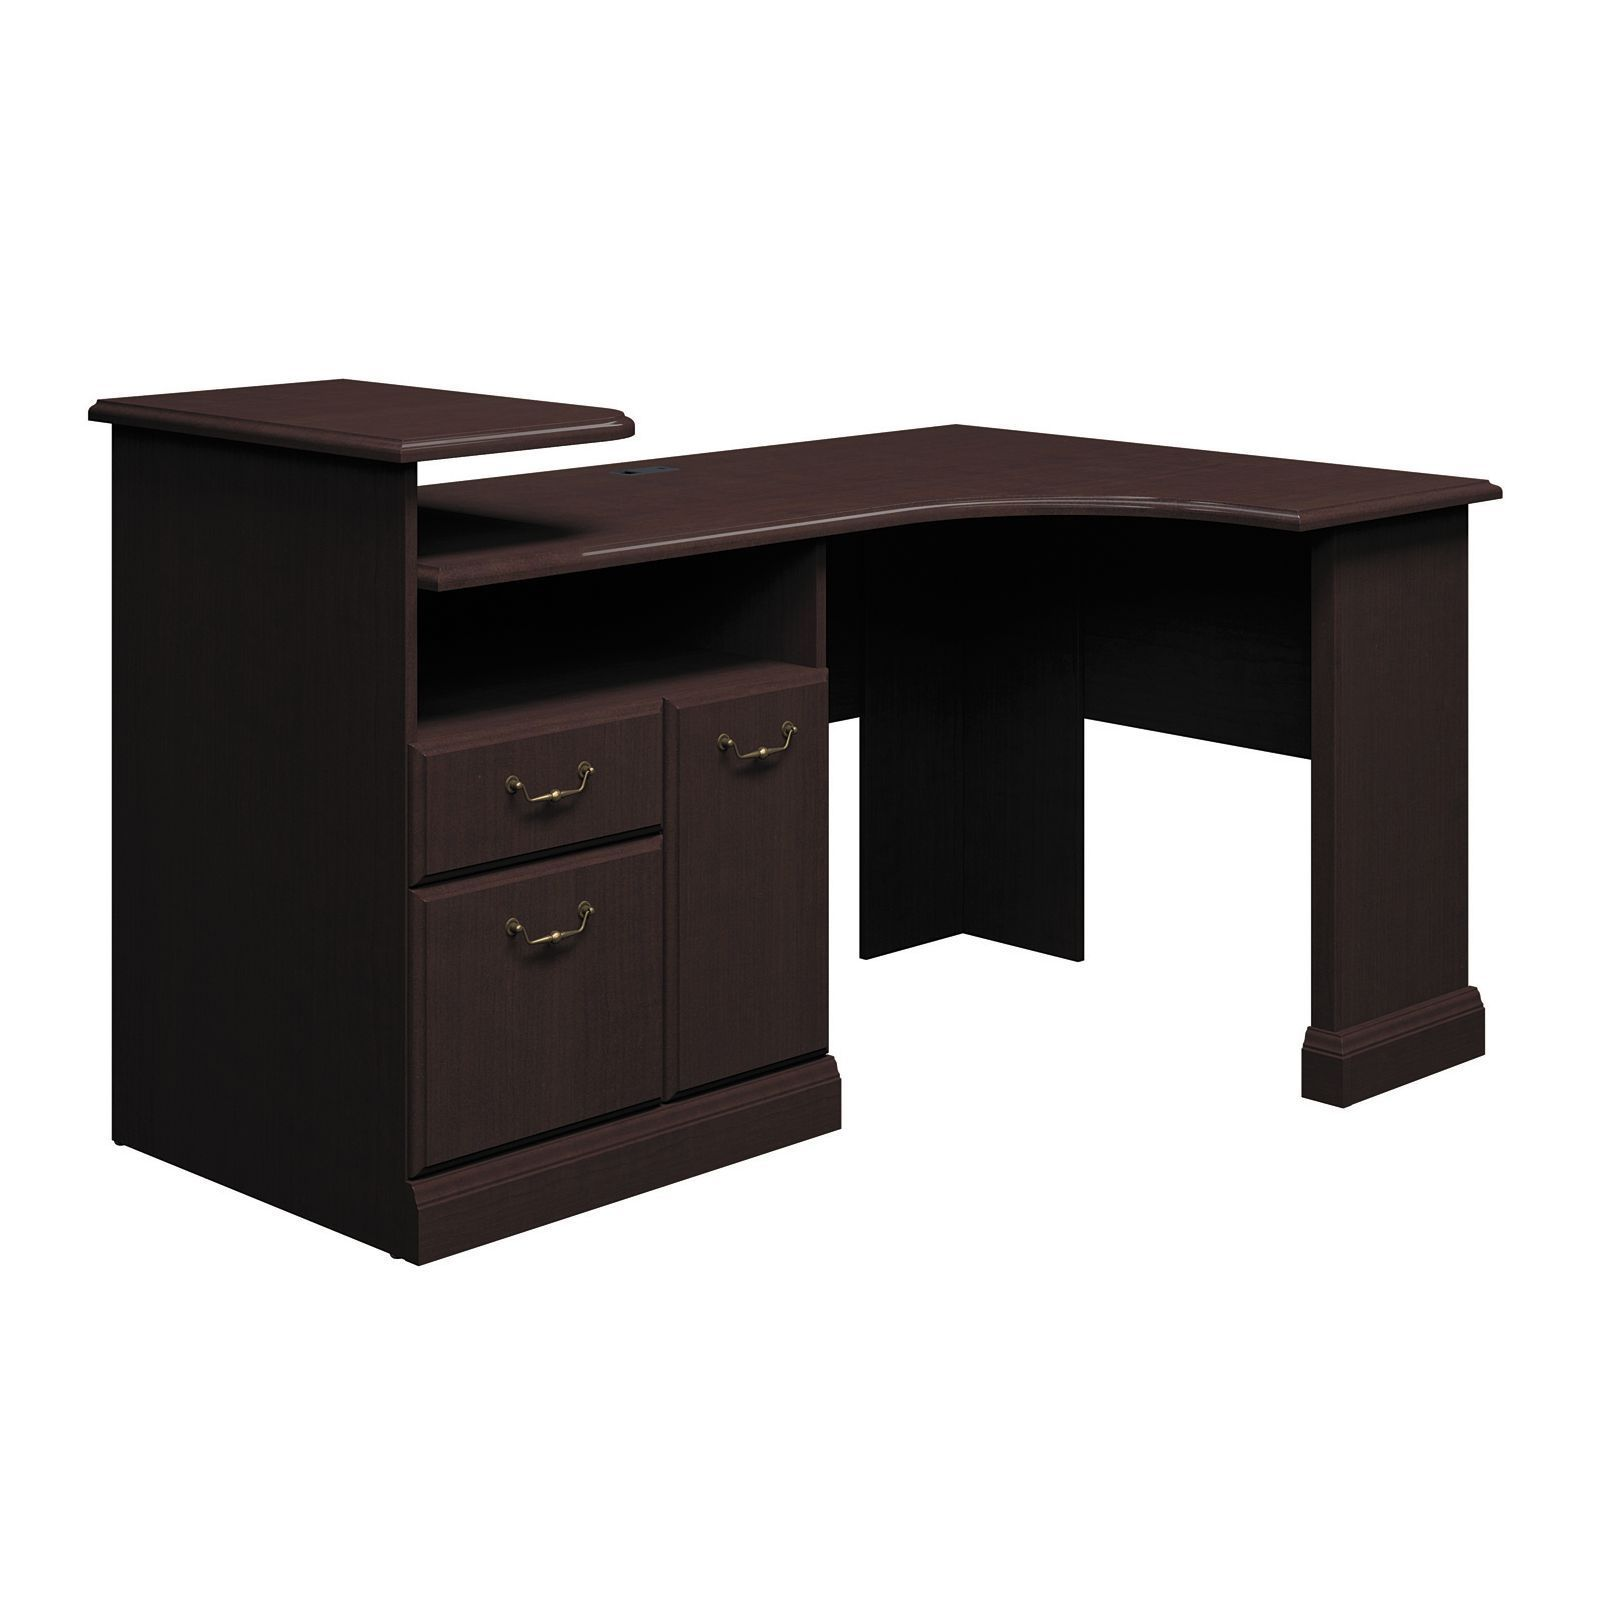 of with bureau storage expandable wooden desks solid hideaway desk lockable p loads